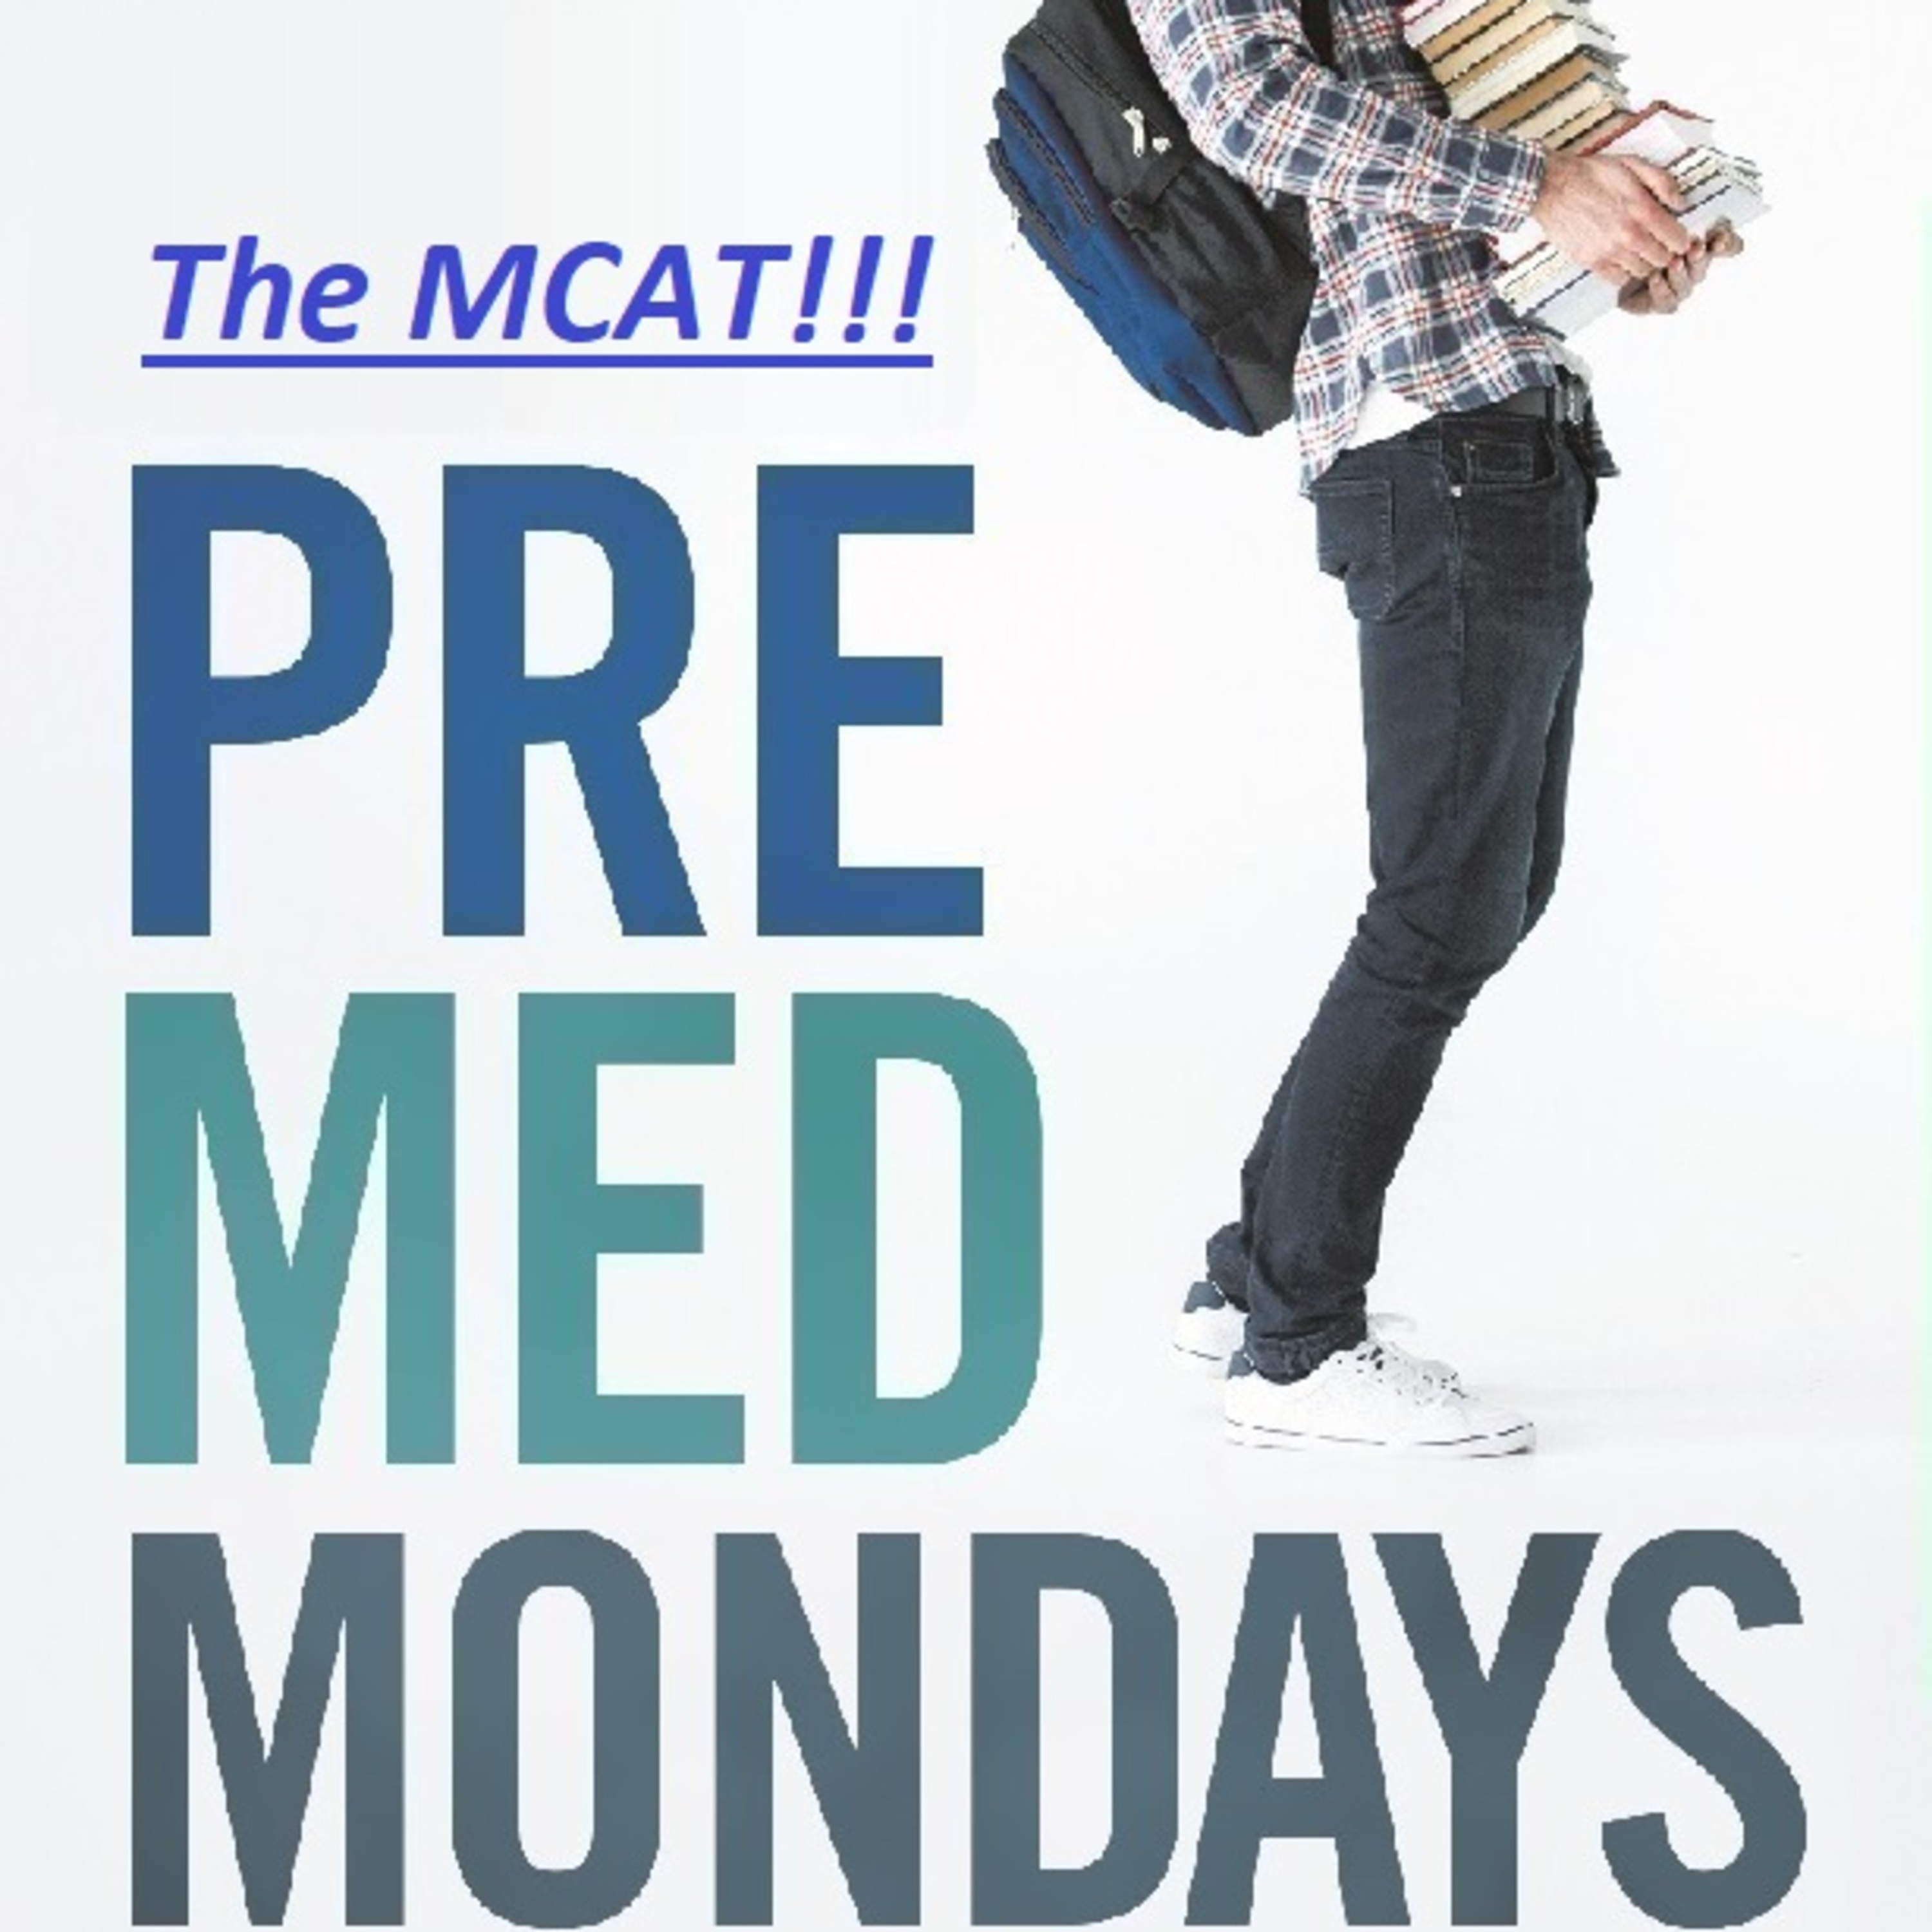 5 Important Things to Know About The MCAT!